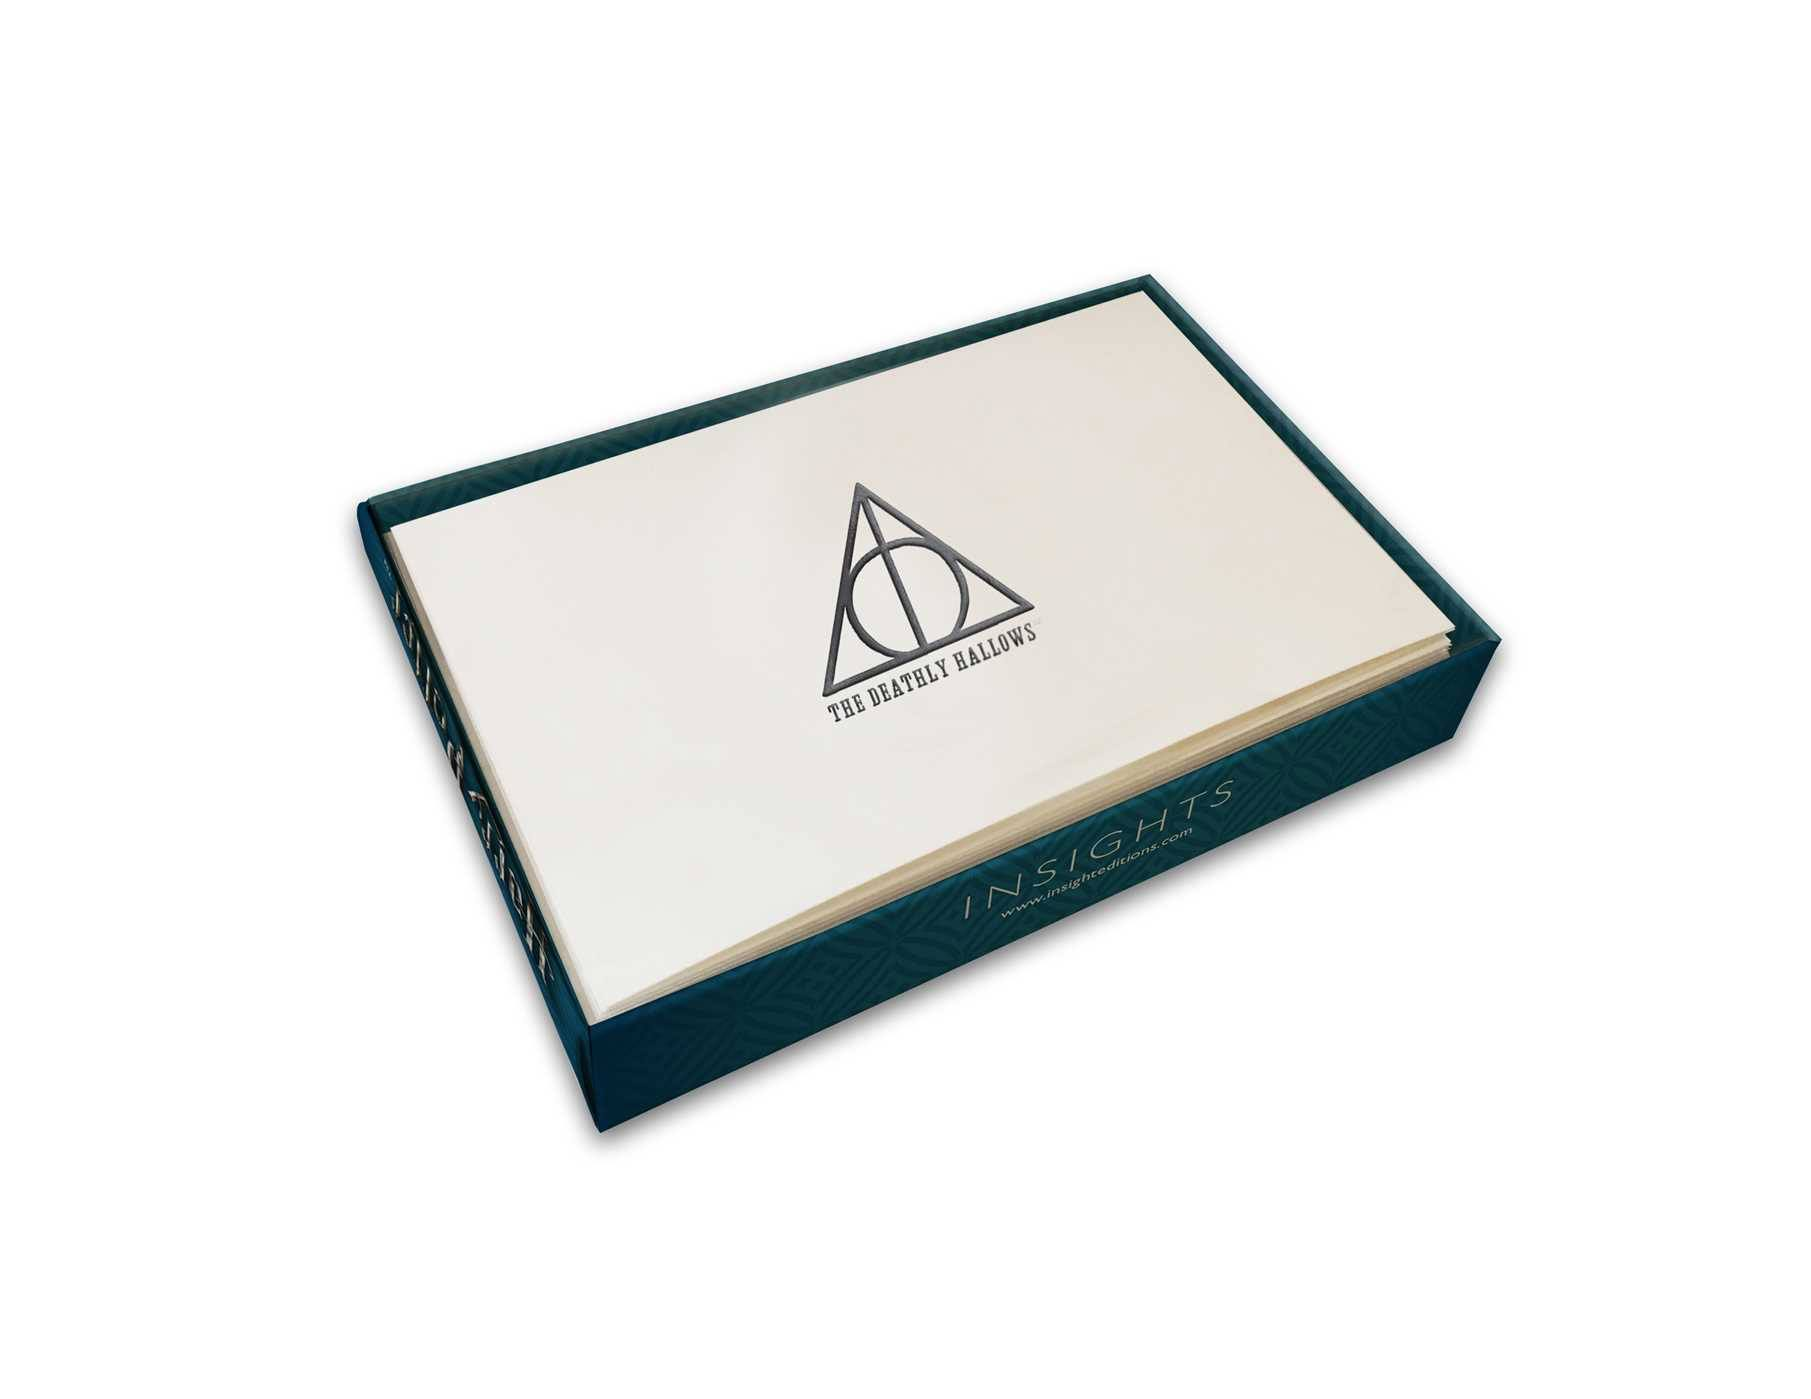 Harry Potter Foil Gift Enclosure Cards 10-Pack Deathly Hallows 89 x 56 mm